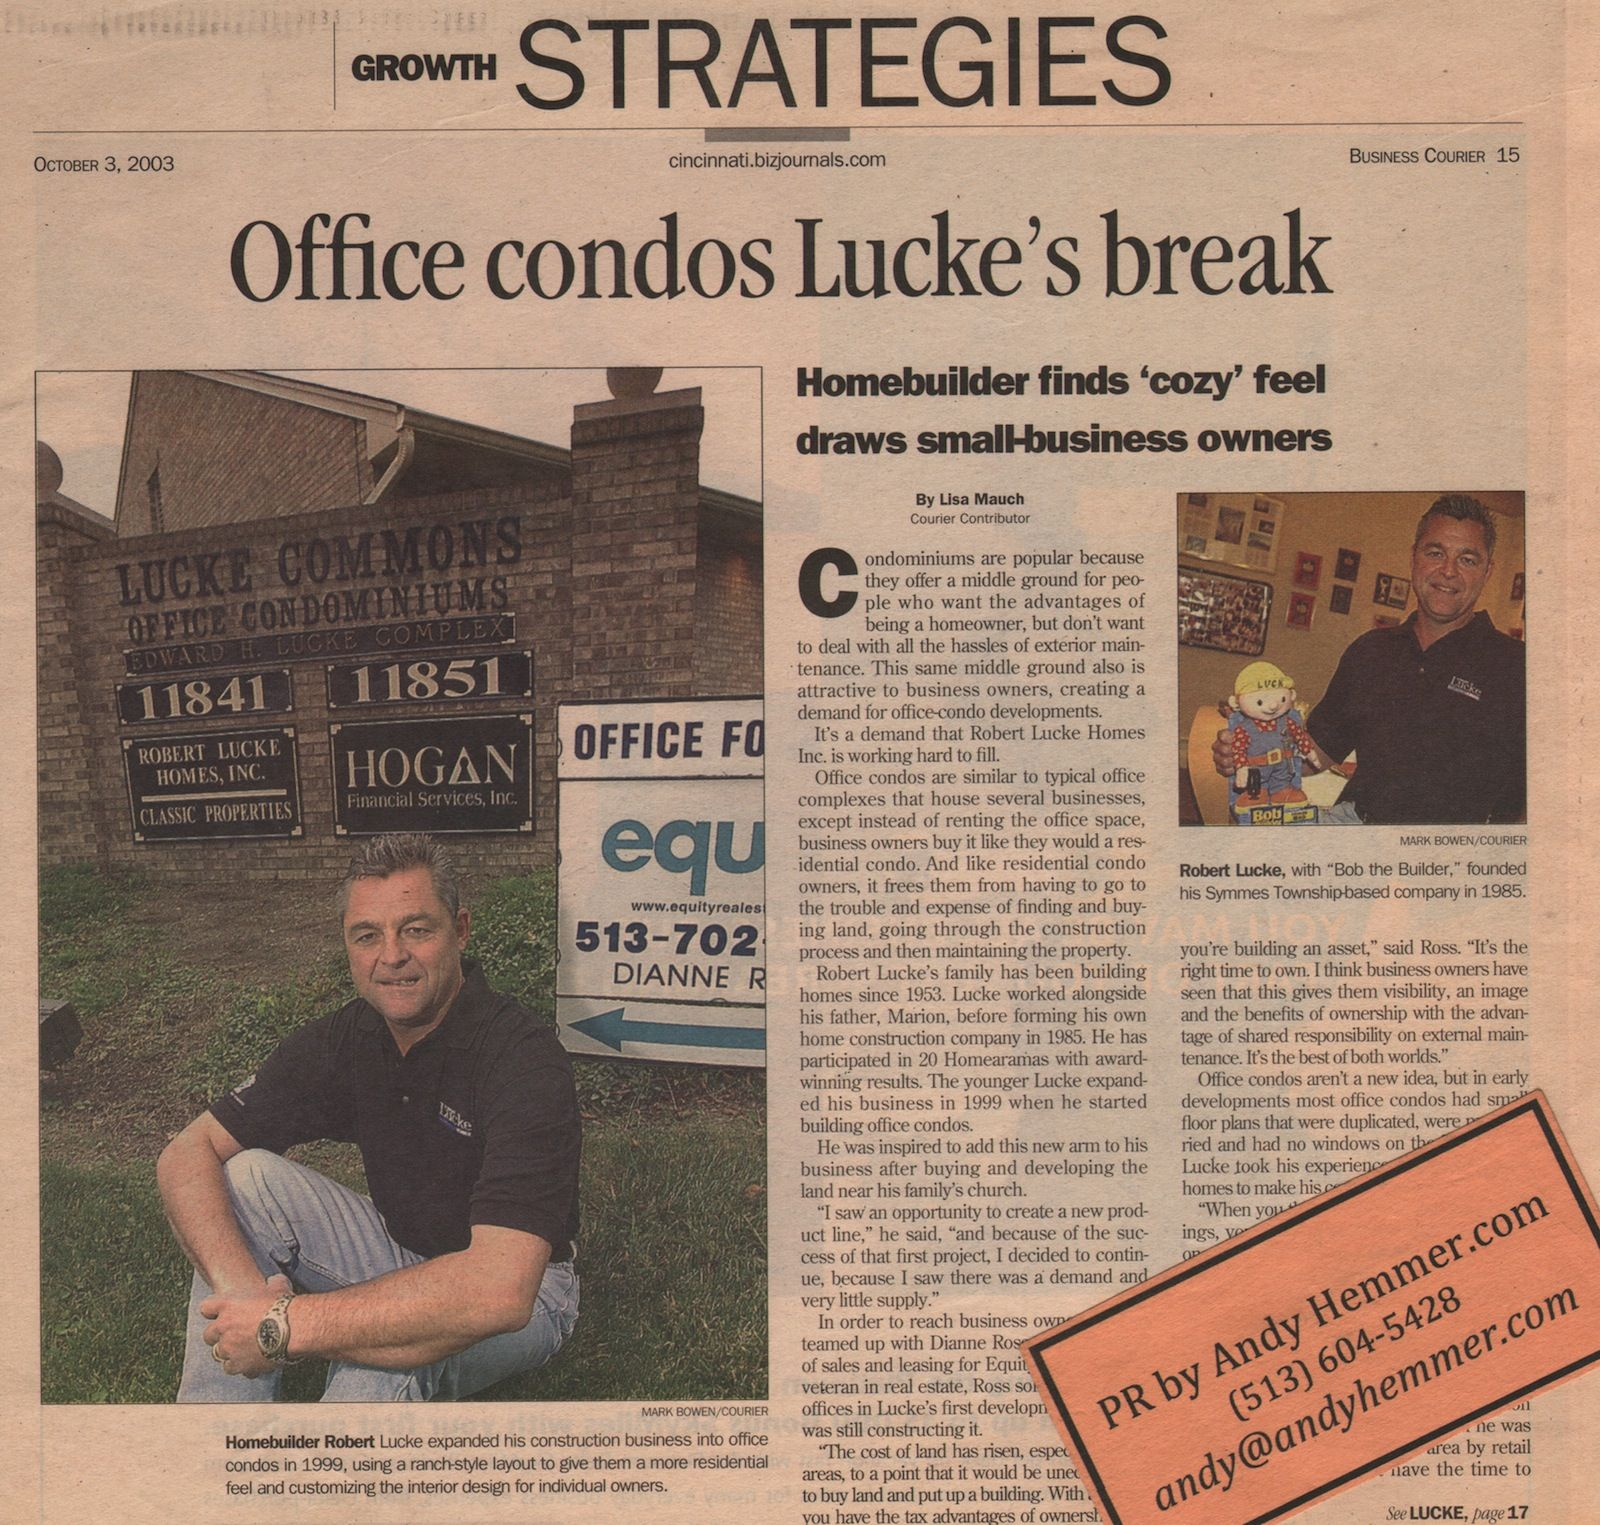 ANNIVERSARY PR: Revisiting clients and previous PR success stories in the pre-Facebook era. With this one, www.robertluckegroup.com expands into office condos, in a www.cincinnatibusinesscourier.com feature nine years ago today: -->> http://thewritingfiendatlarge.wordpress.com/2012/10/03/robert-lucke-homes-in-2003-cincinnati-business-courier-feature-nine-years-ago-today-now-flexing-towards-homearama-2013-marking-60-years-of-craftsmanship-and-detail/